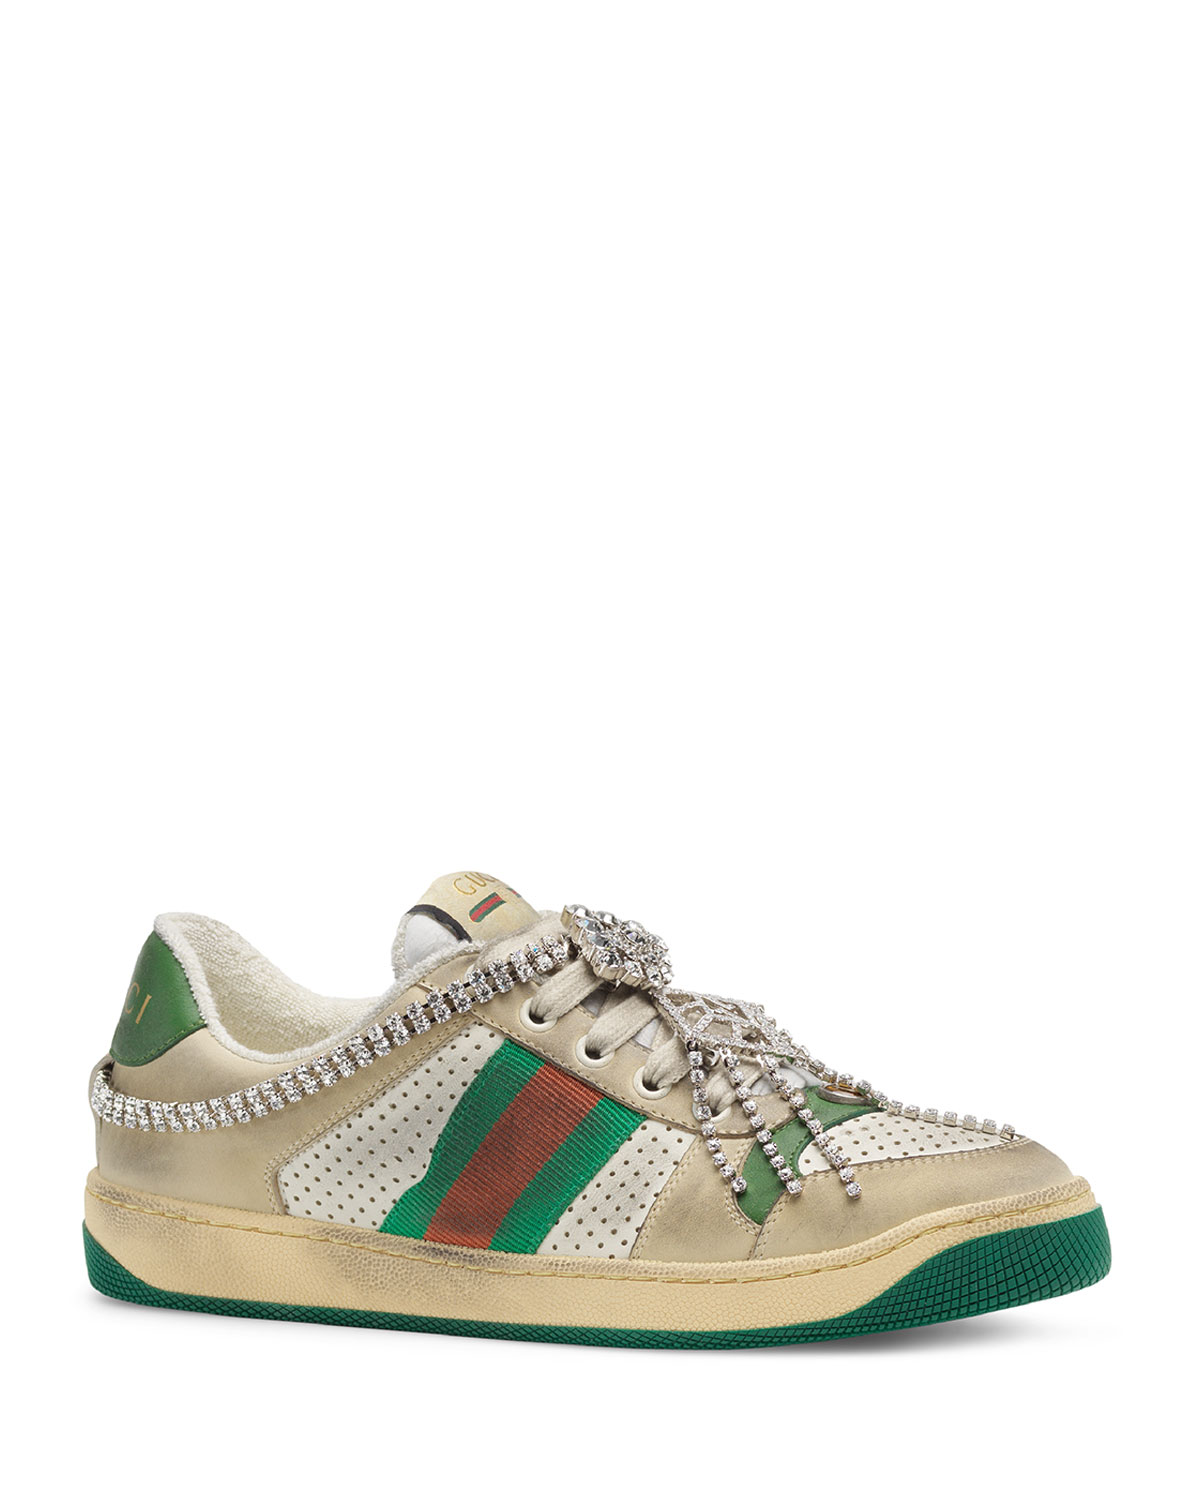 c6c1629d4 Gucci Screener Dirty Sneakers with Crystals | Neiman Marcus